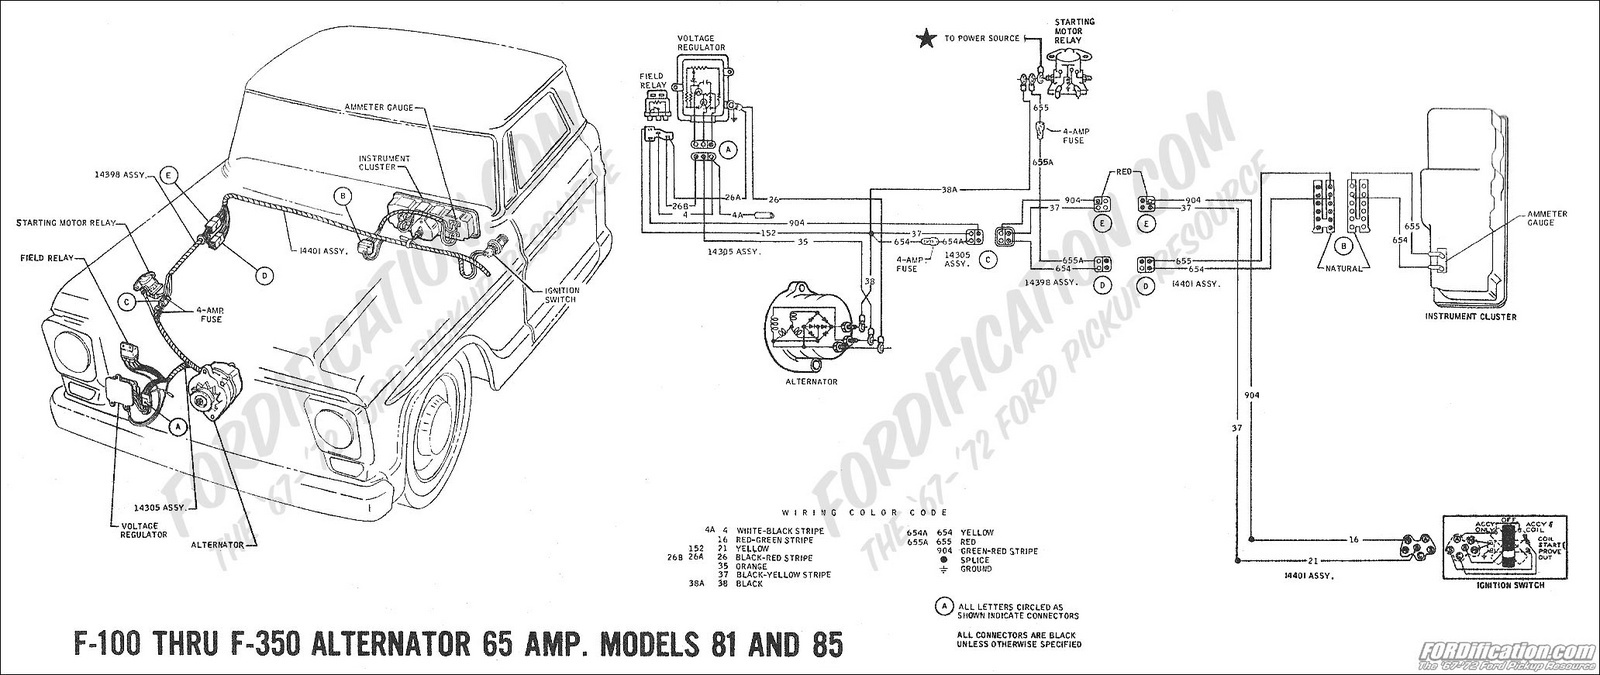 1973 Ford Bronco Wiring Diagram Will Be A Thing 1996 Fuse F 100 Questions I Have 73 No Power 1978 1988